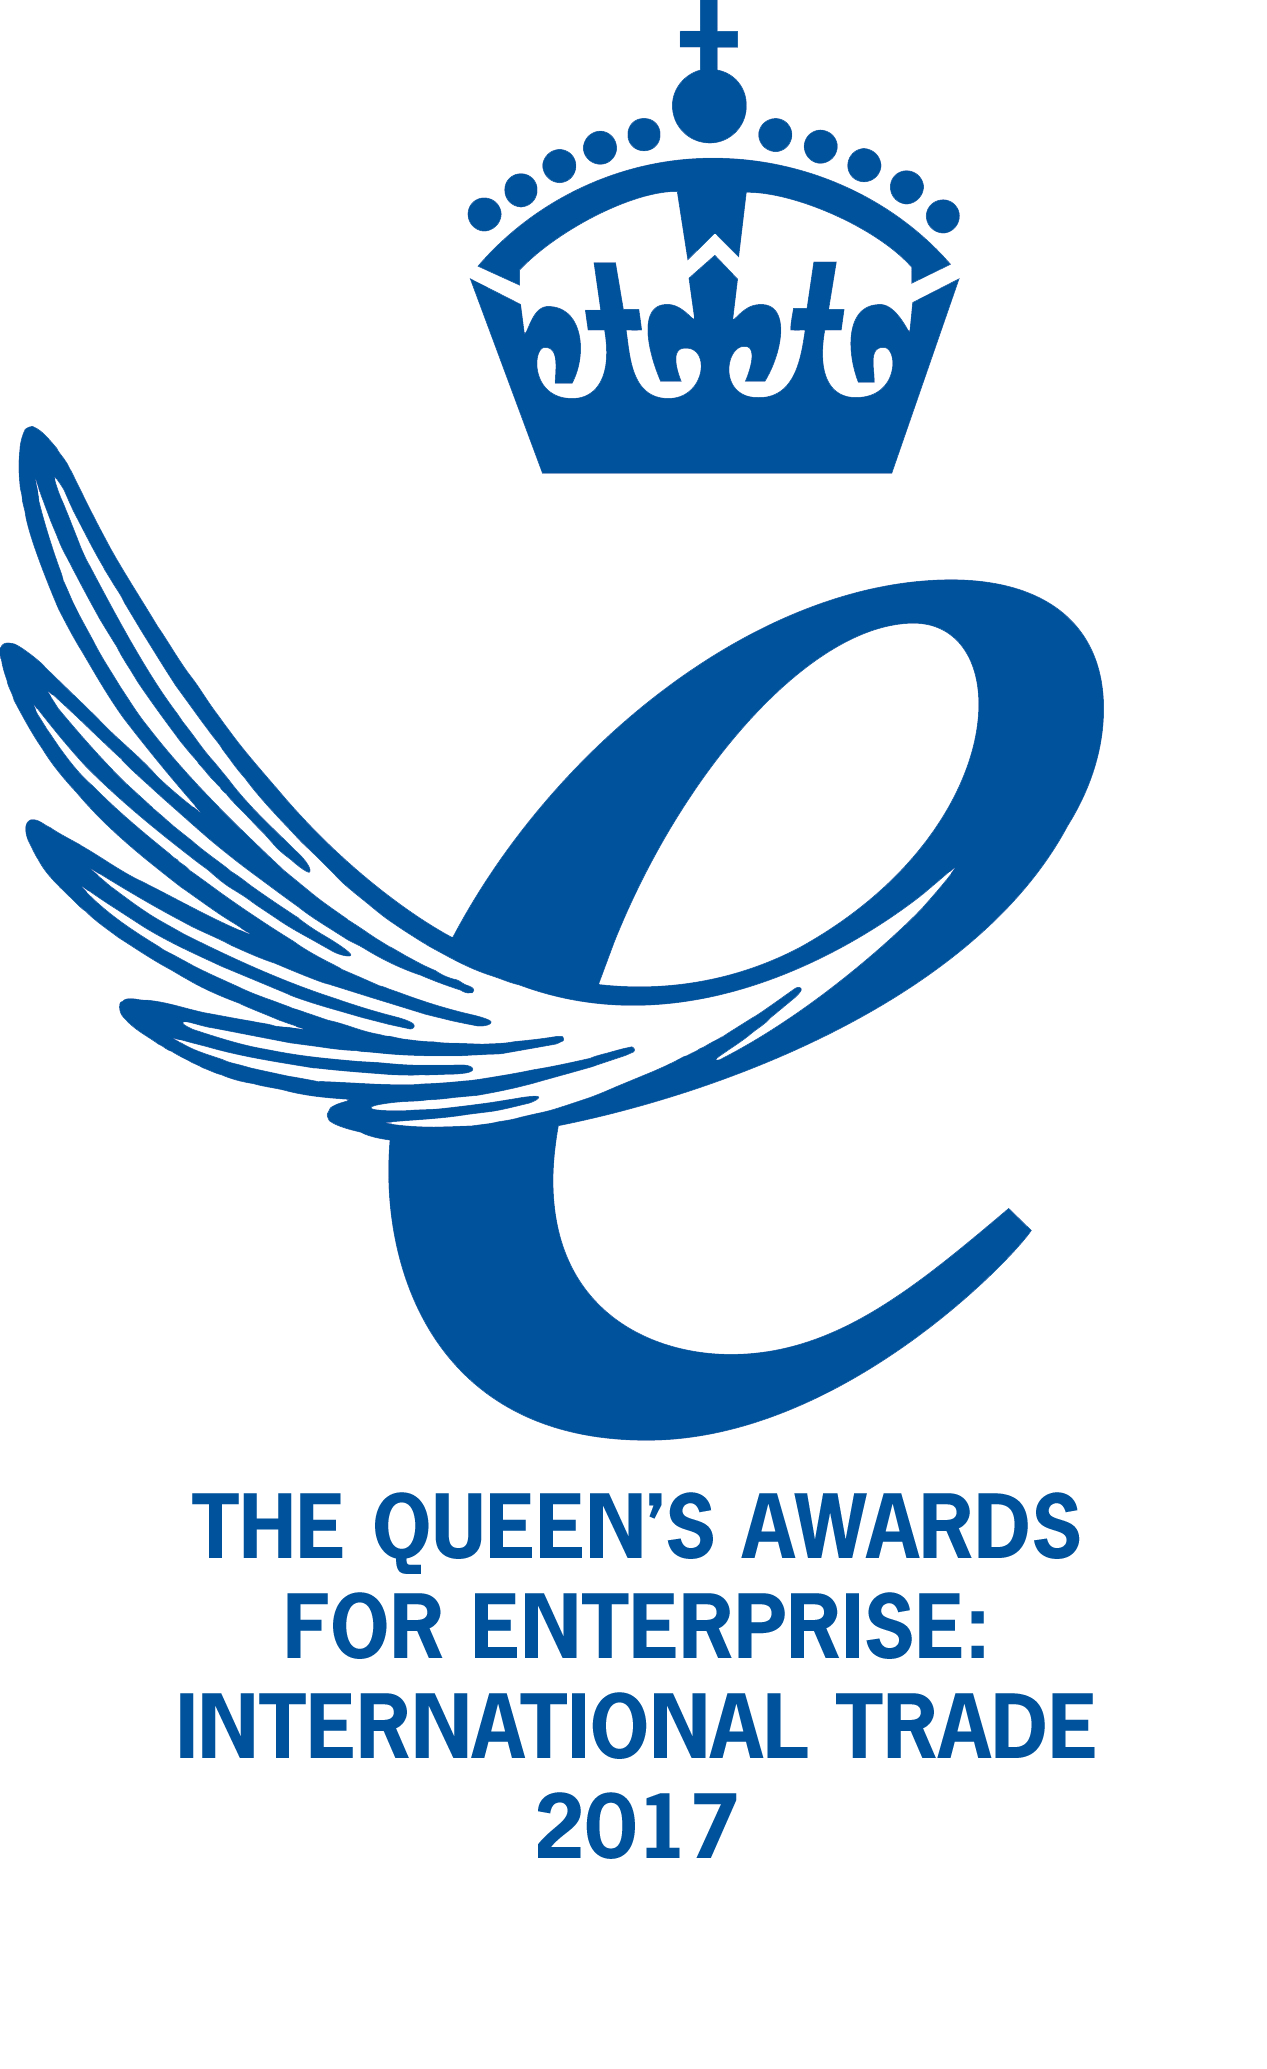 Queen's Awards for Enterprise- International Trade 2017 Emblem.png